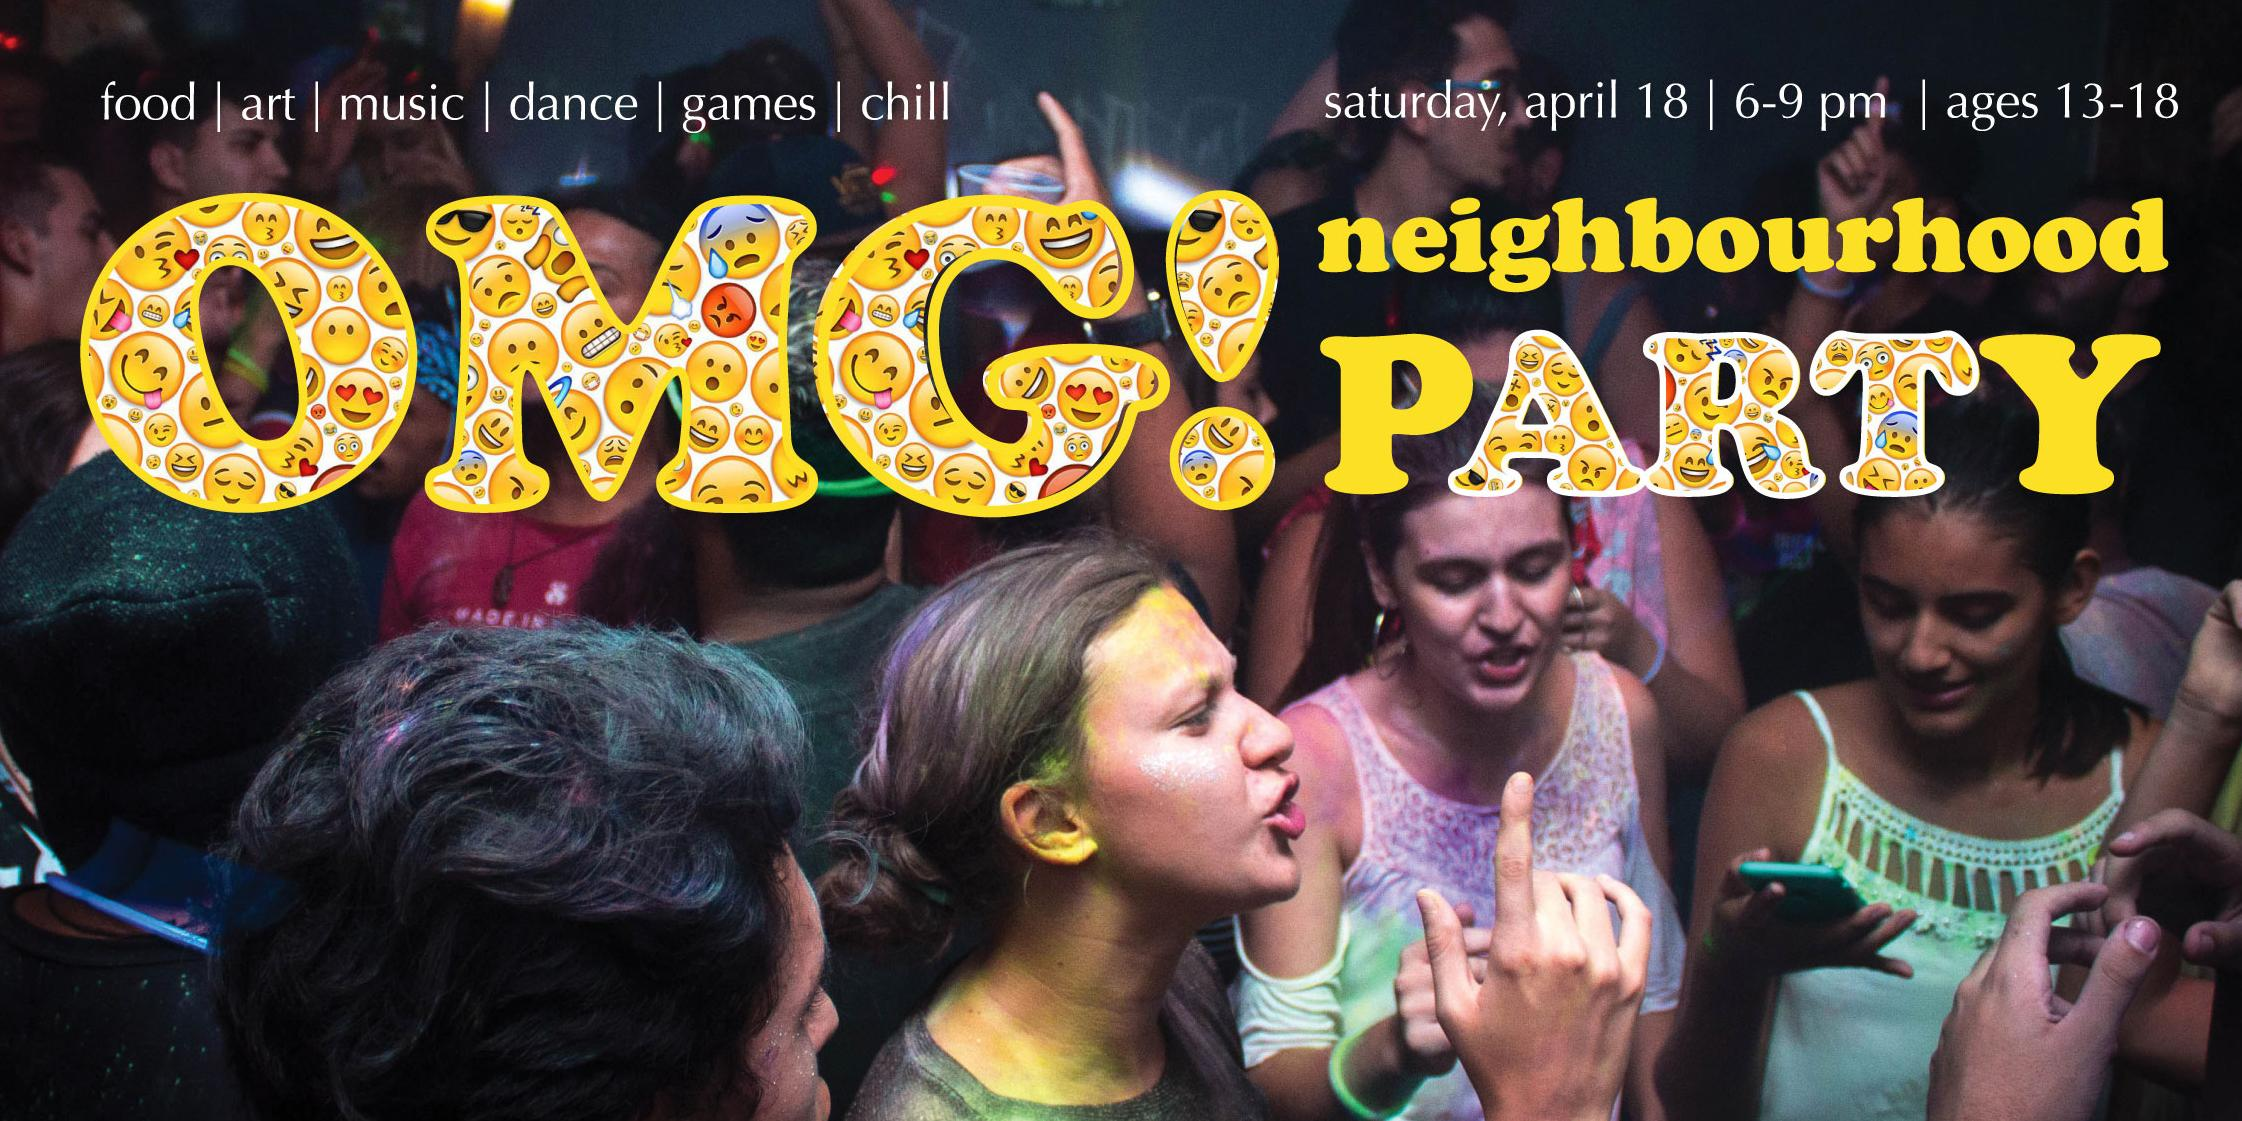 OMG! Free Neighbourhood Party | Ages 13-18